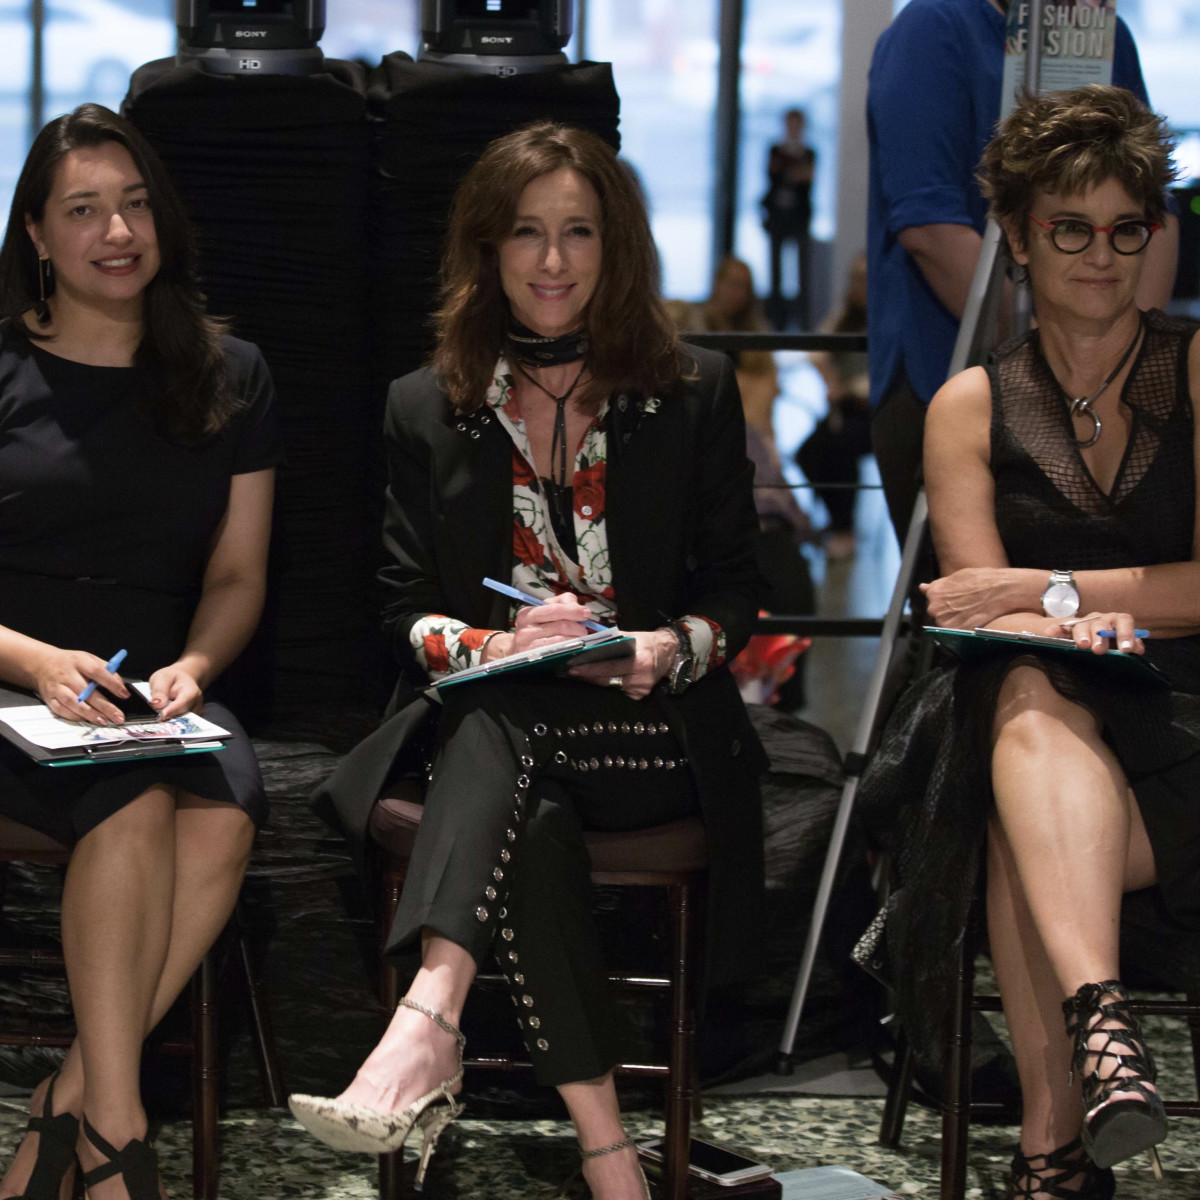 Houston, MFAH Fashion Fusion 2017, May 2017, Judges Sameera Faridi; Leah Little Hale; Mari Carmen Ramirez